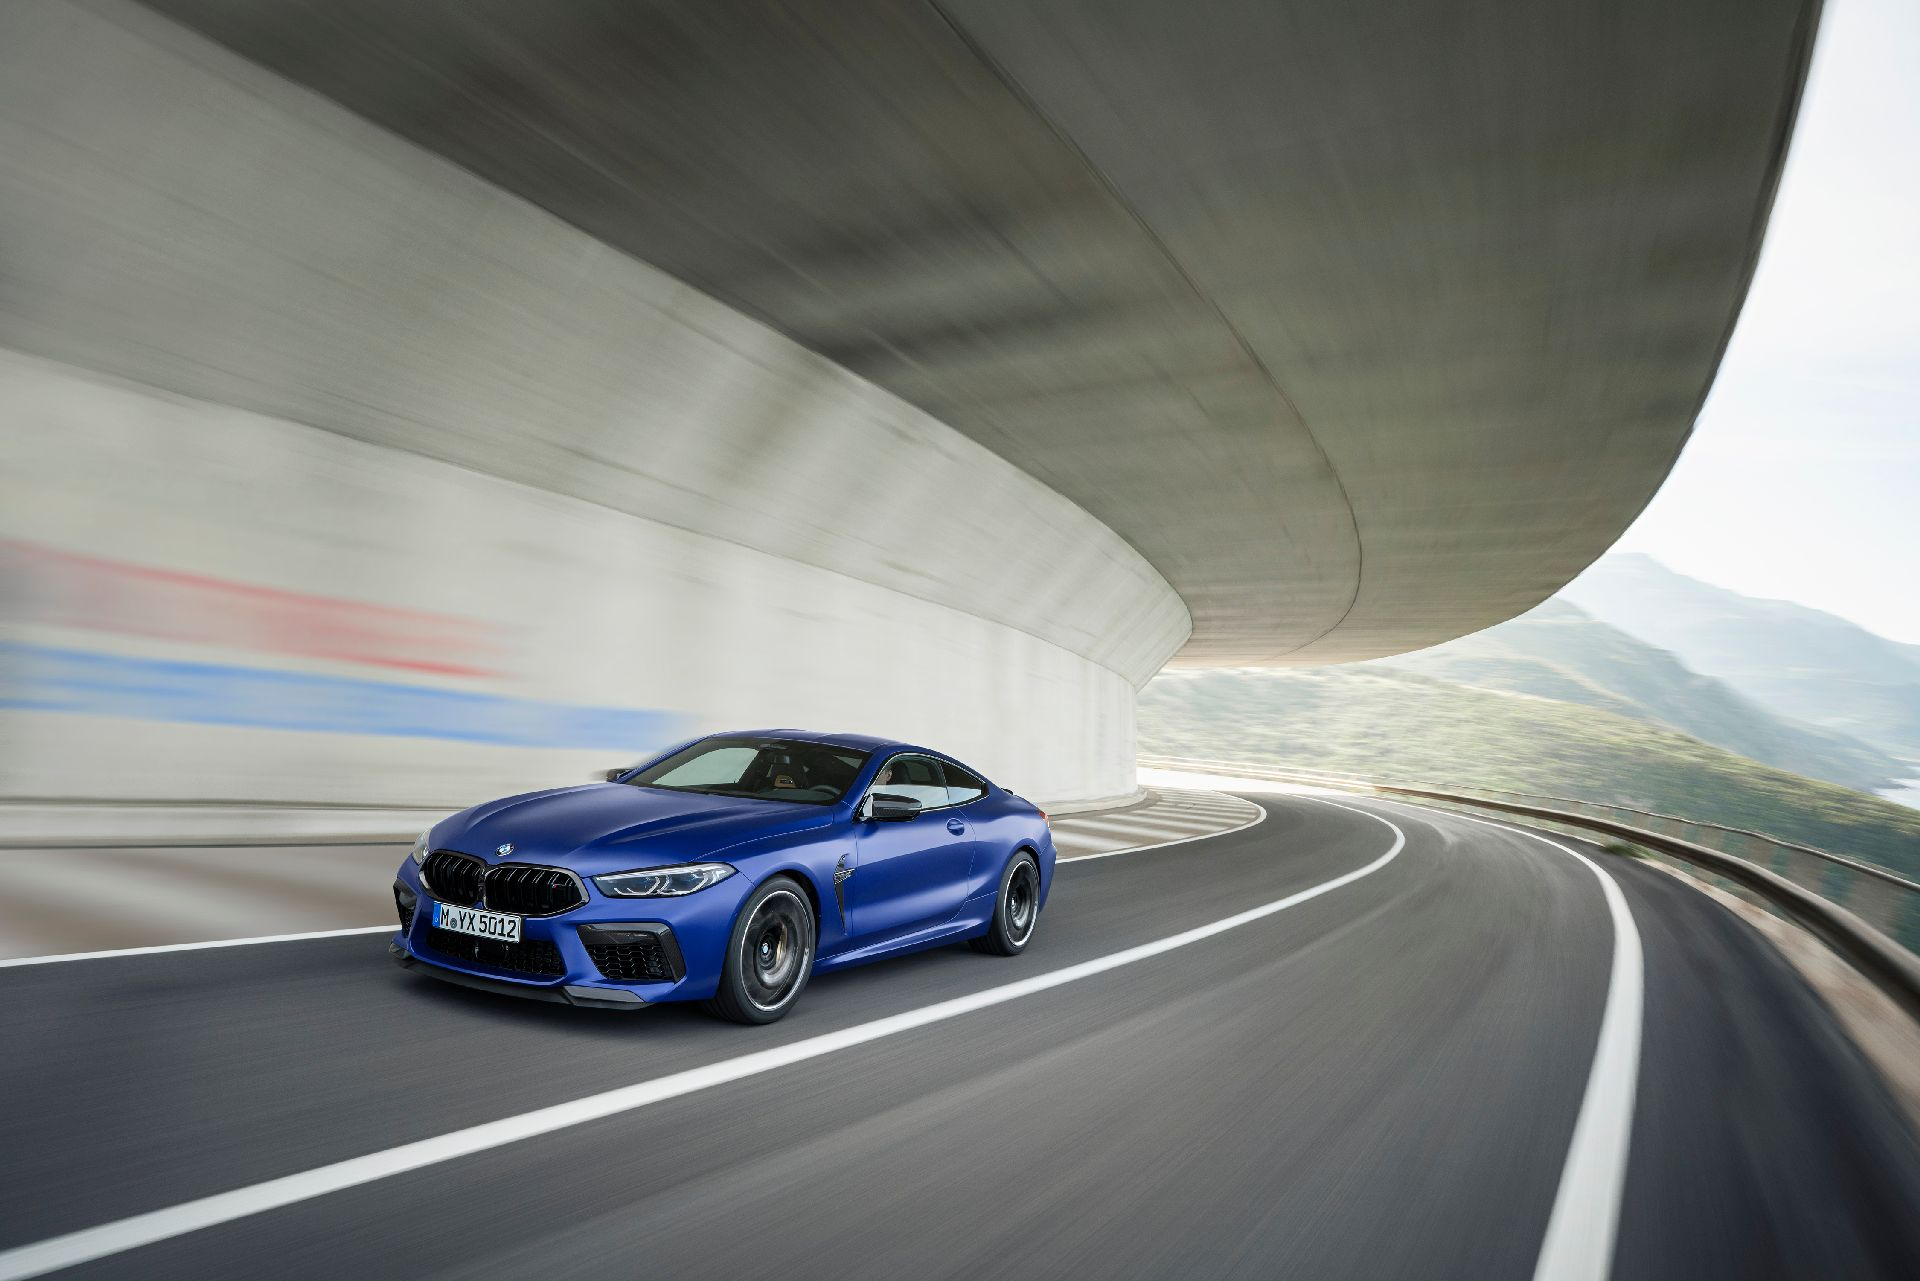 bmw-m8-coupe-23.jpg